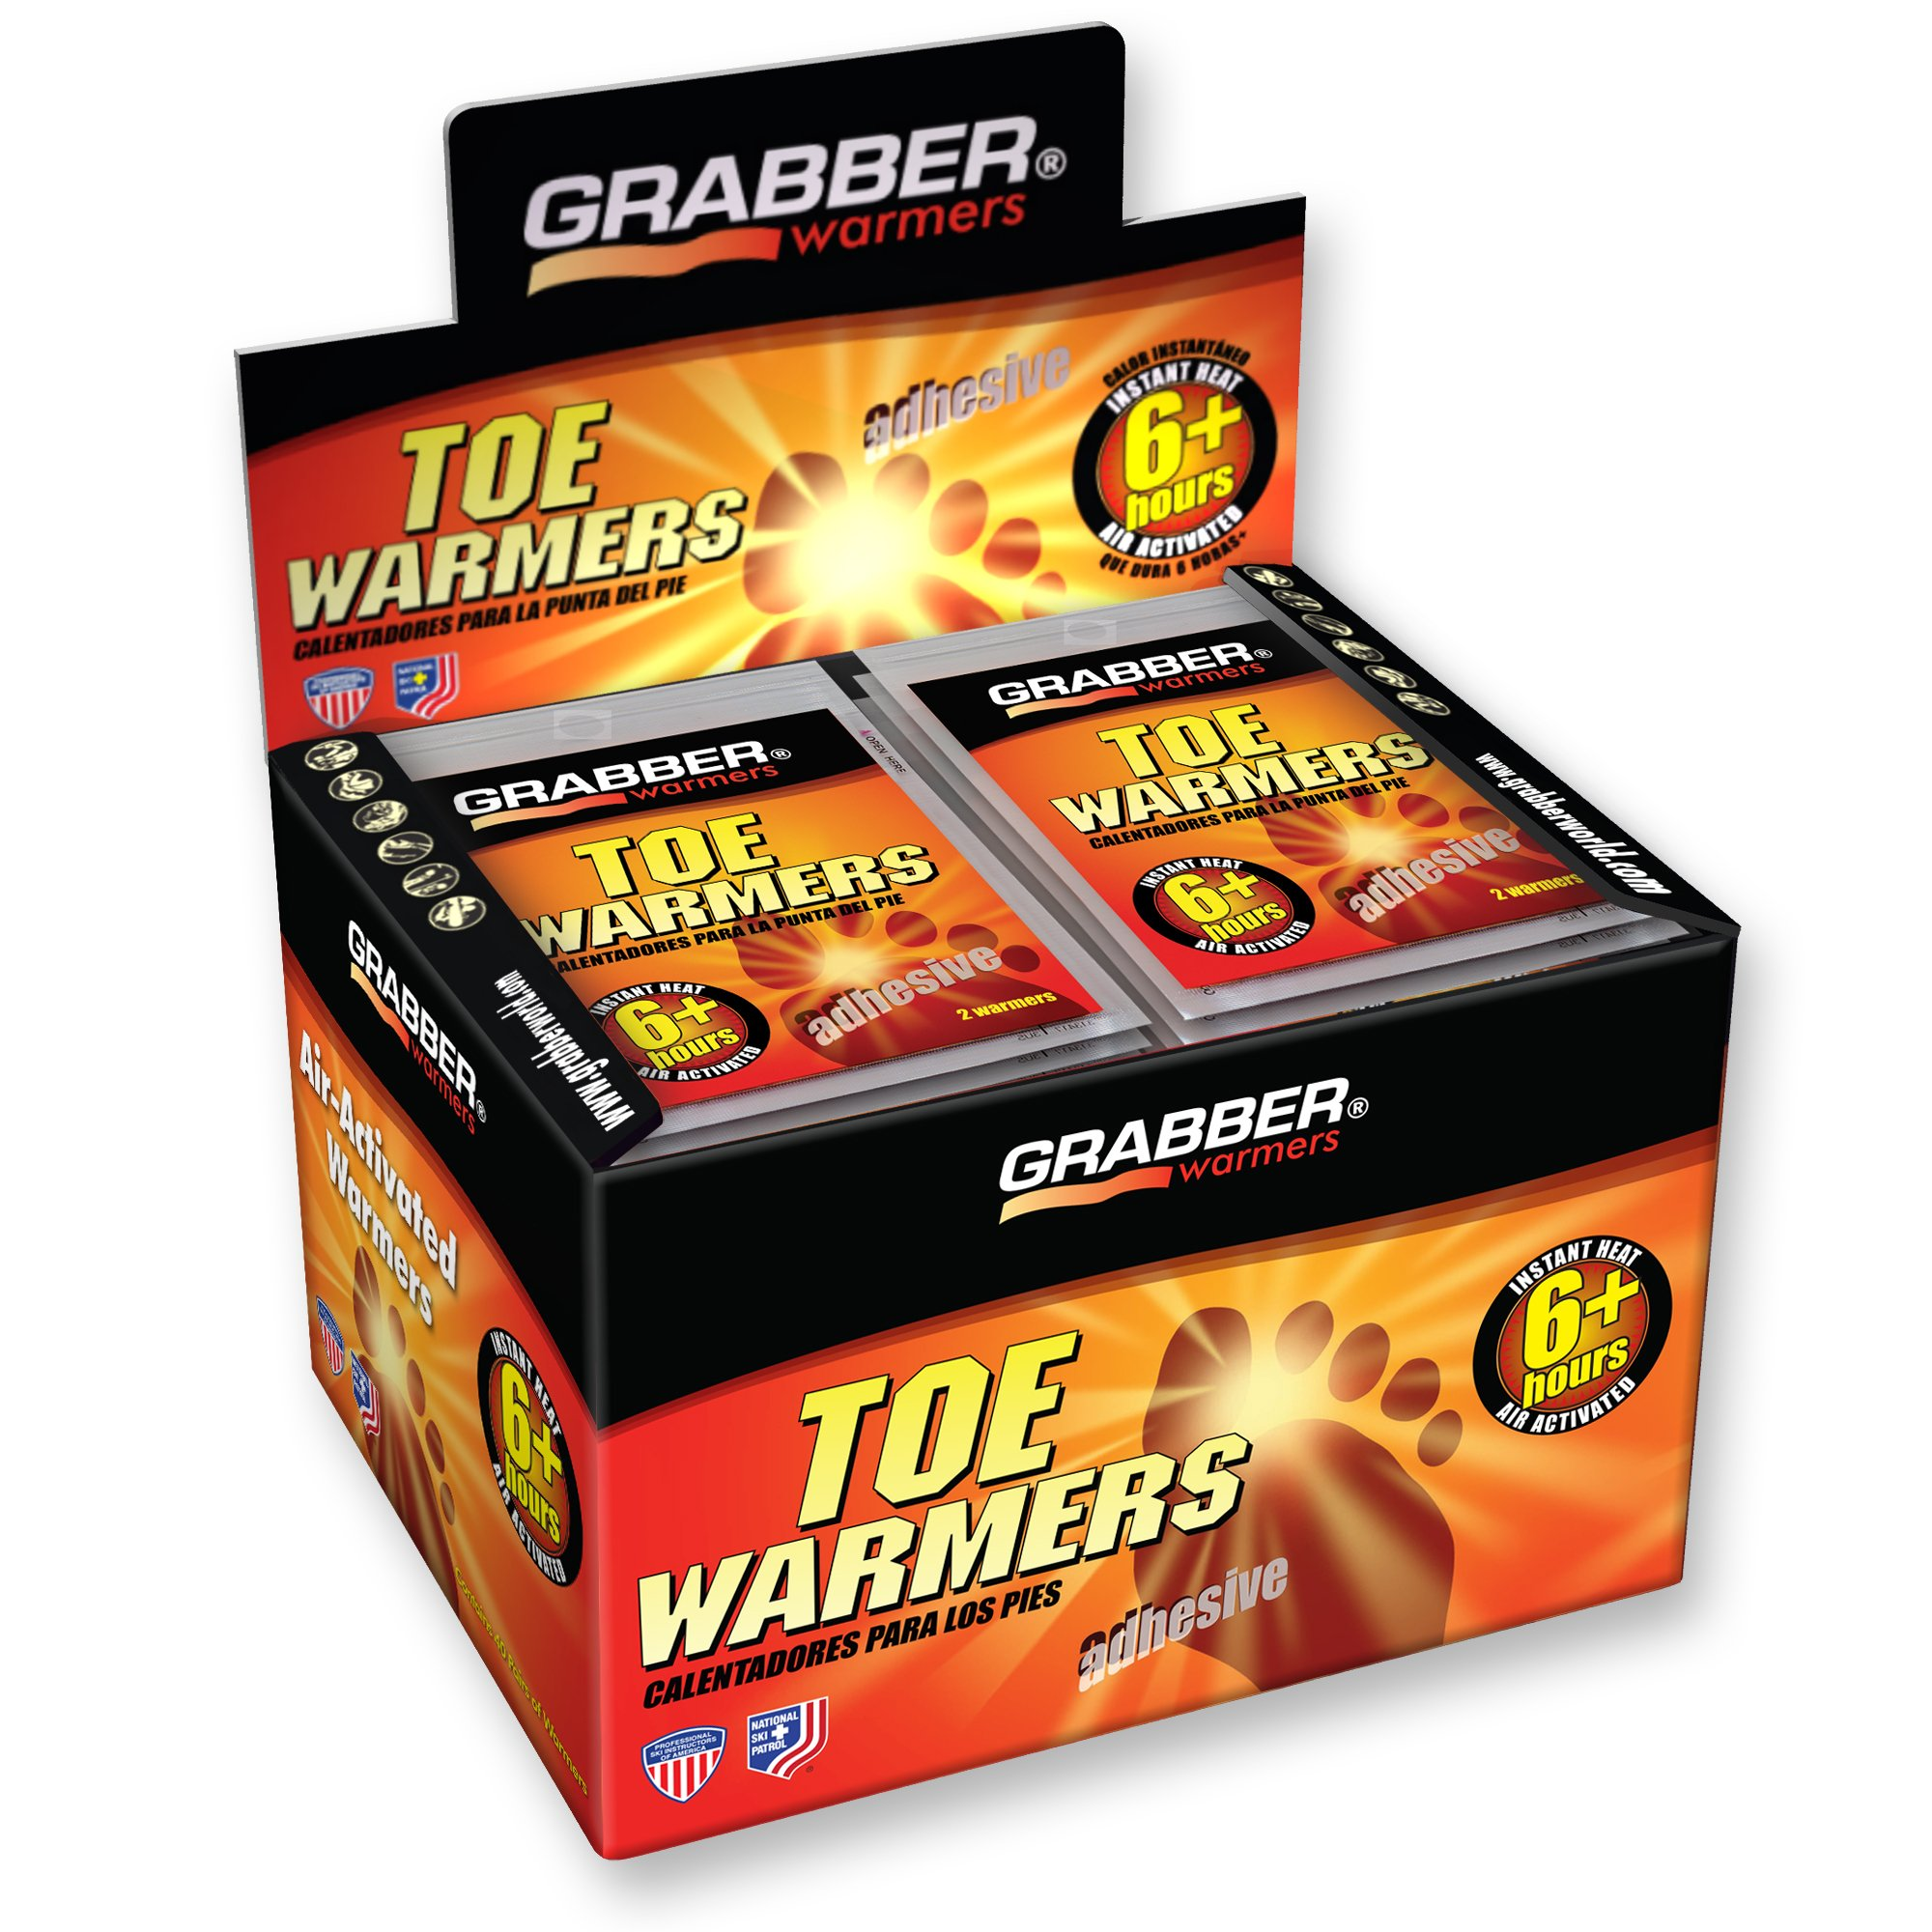 Grabber Toe Hand Warmers - Long Lasting Safe Natural Odorless Air Activated Warmers - Up to 6 Hours of Heat - 40 Pair